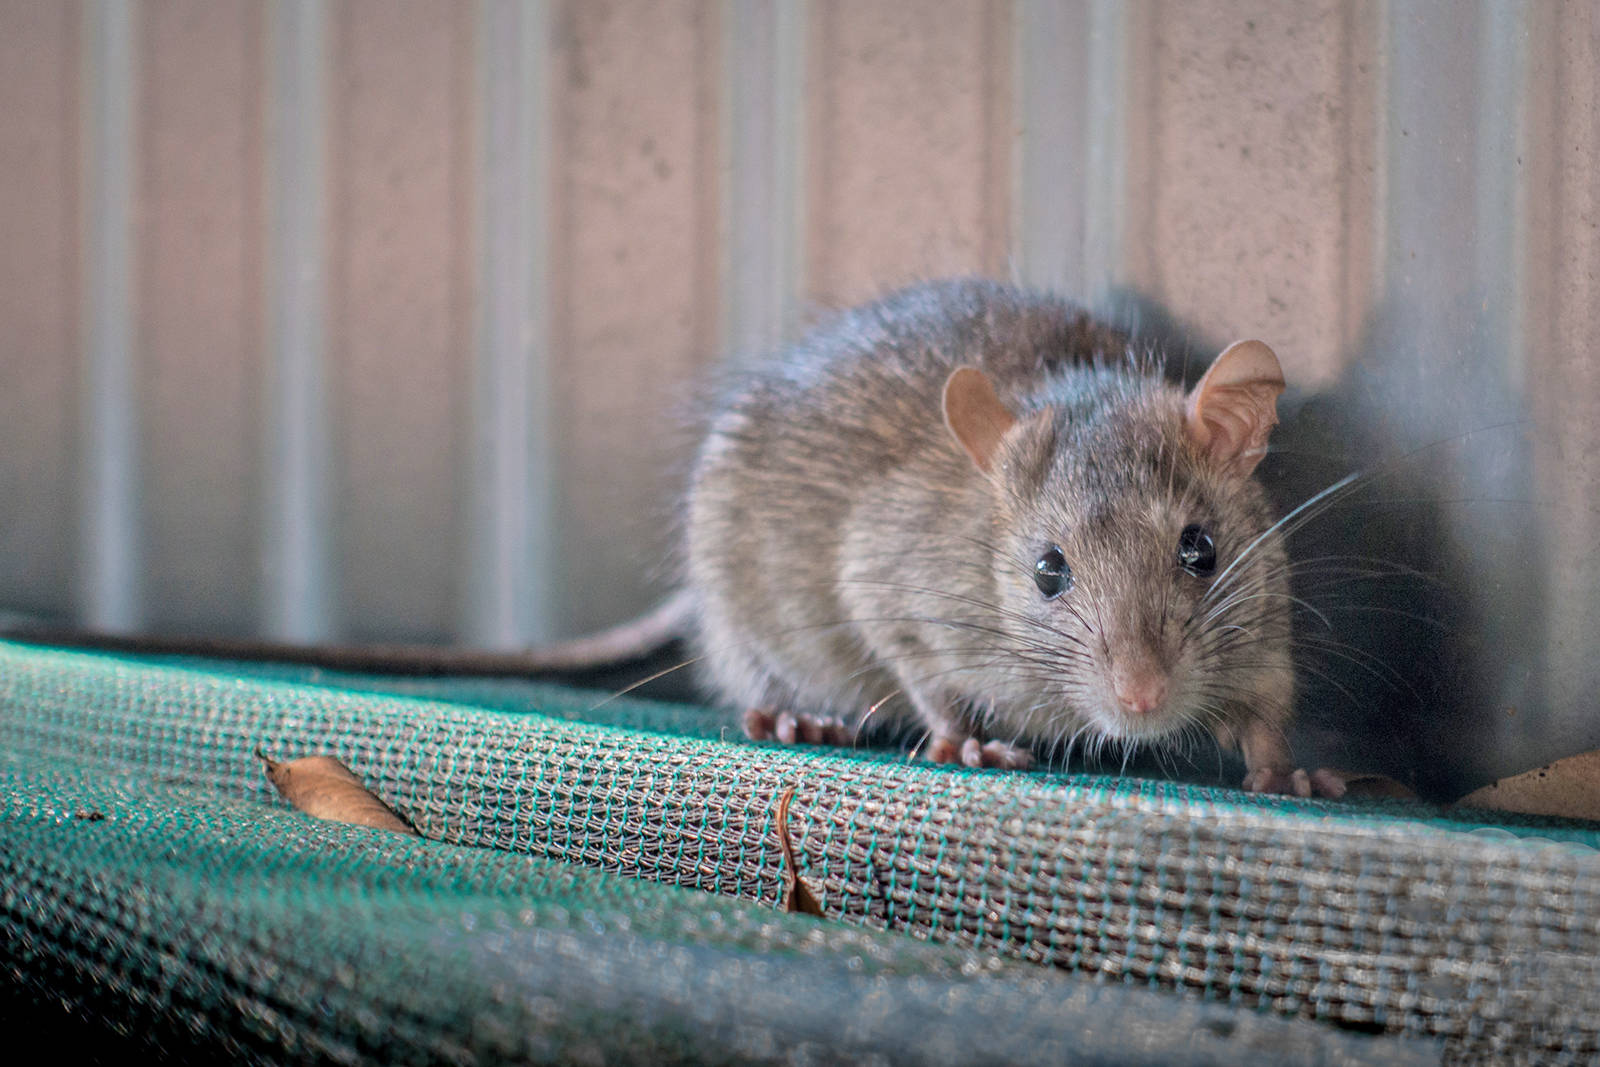 Many BC communities are experiencing unusually large rat and mouse infestations.